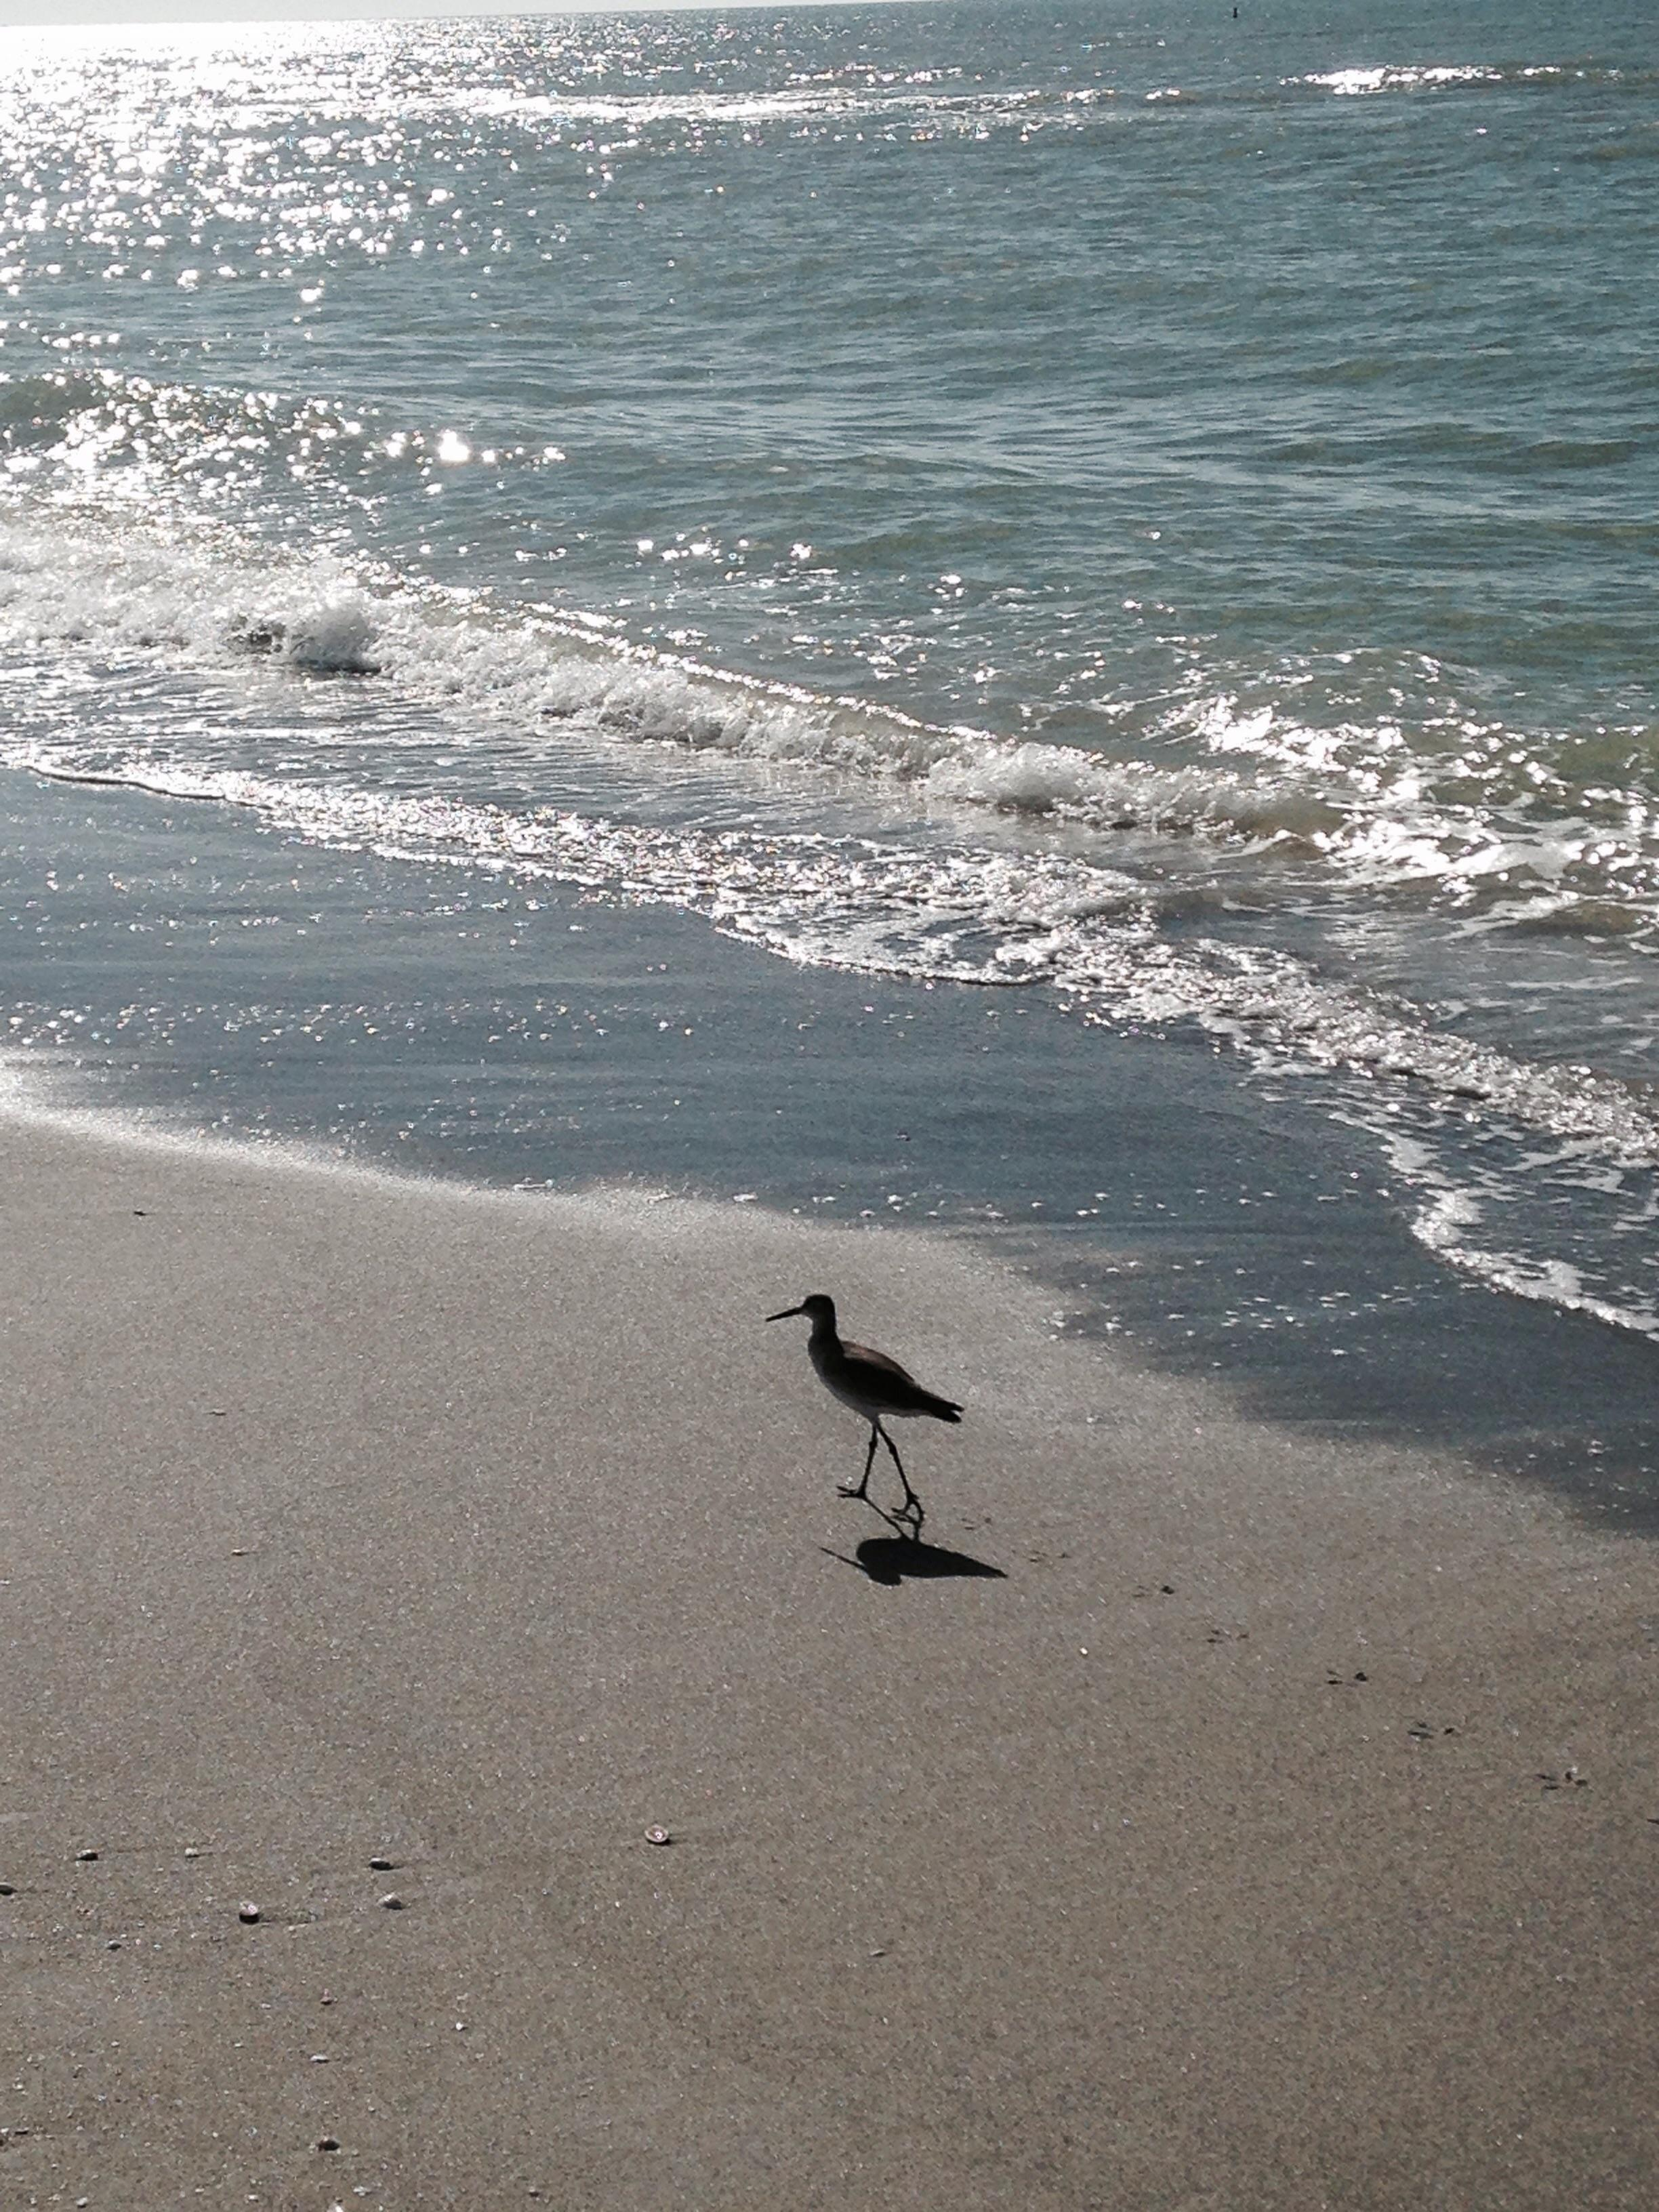 Sweet little bird, chasing waves